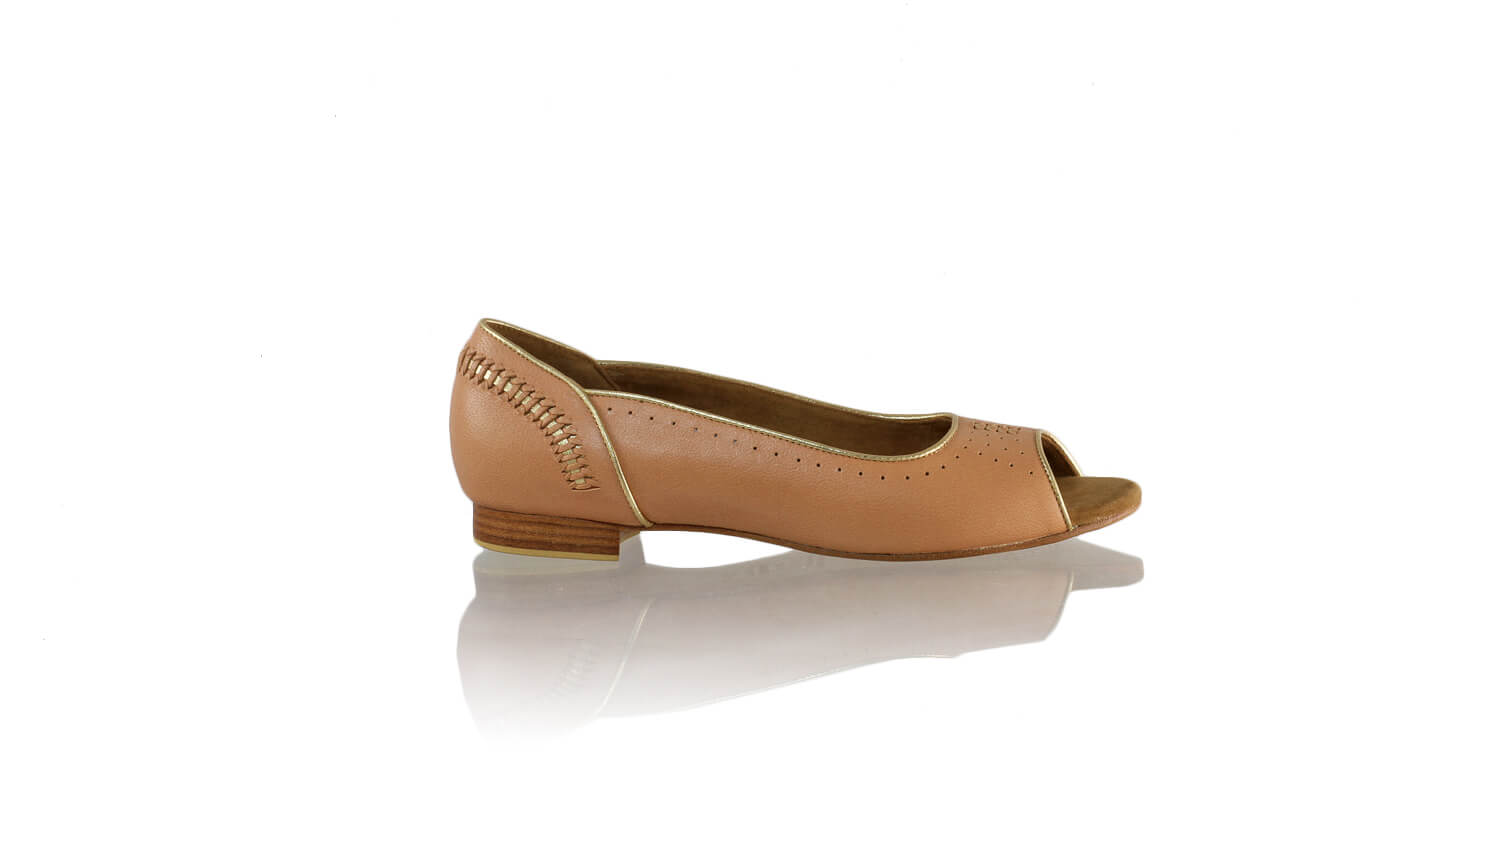 Leather-shoes-Donna Peeptoe 20mm Ballet - Baby Pink & Gold-flats ballet-NILUH DJELANTIK-NILUH DJELANTIK